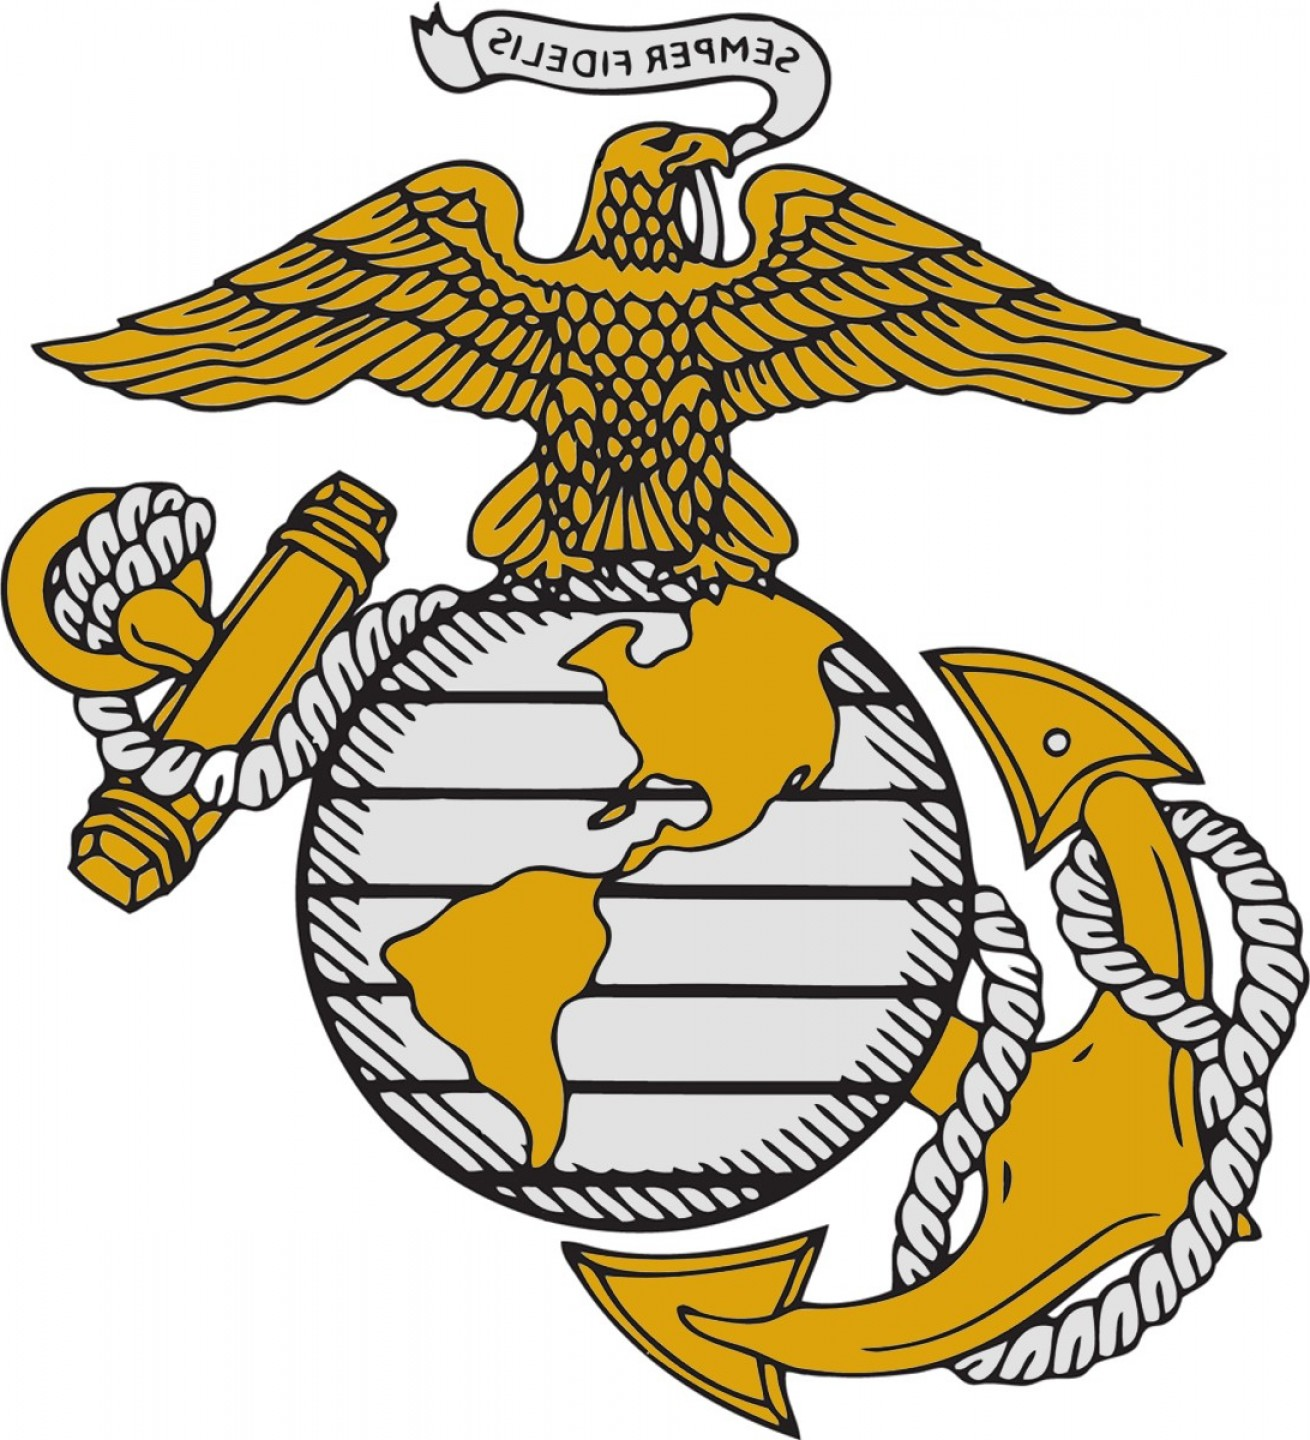 U S. Navy Logo Vector: Extremely Marine Corps Logo Vector High Resolution Army Navy Air Force Marines And Coast Guard Logos